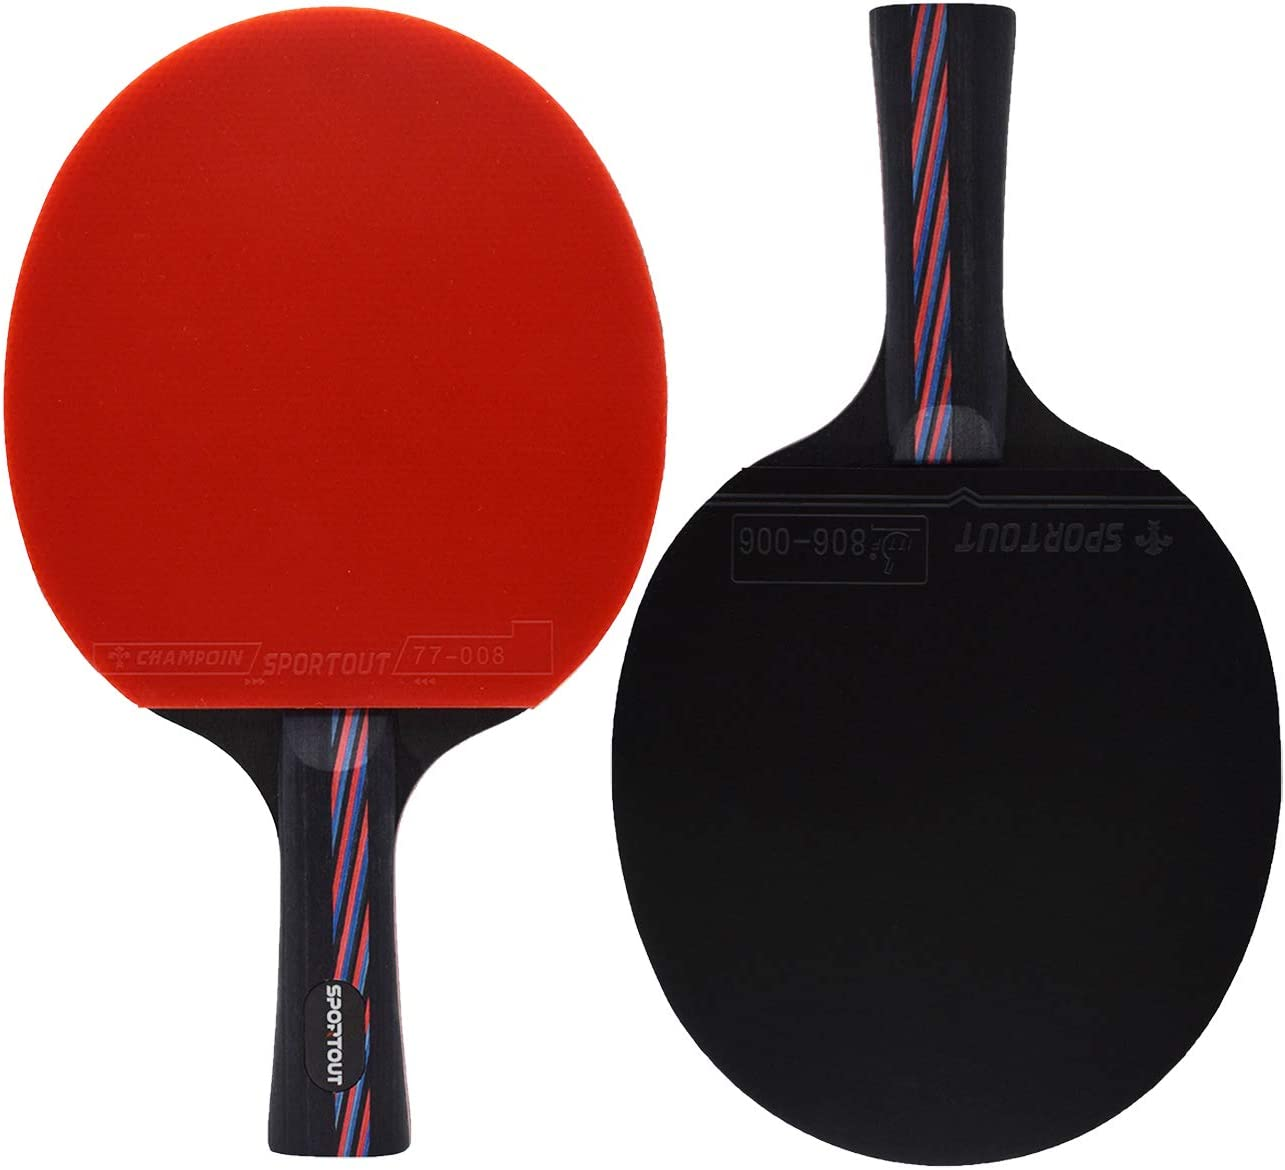 Professional Pingpong Racket with Case Sportout Sriver-He Rubber Table Tennis Paddle 9-ply Wood and 8-ply Carbon Blade About 210g